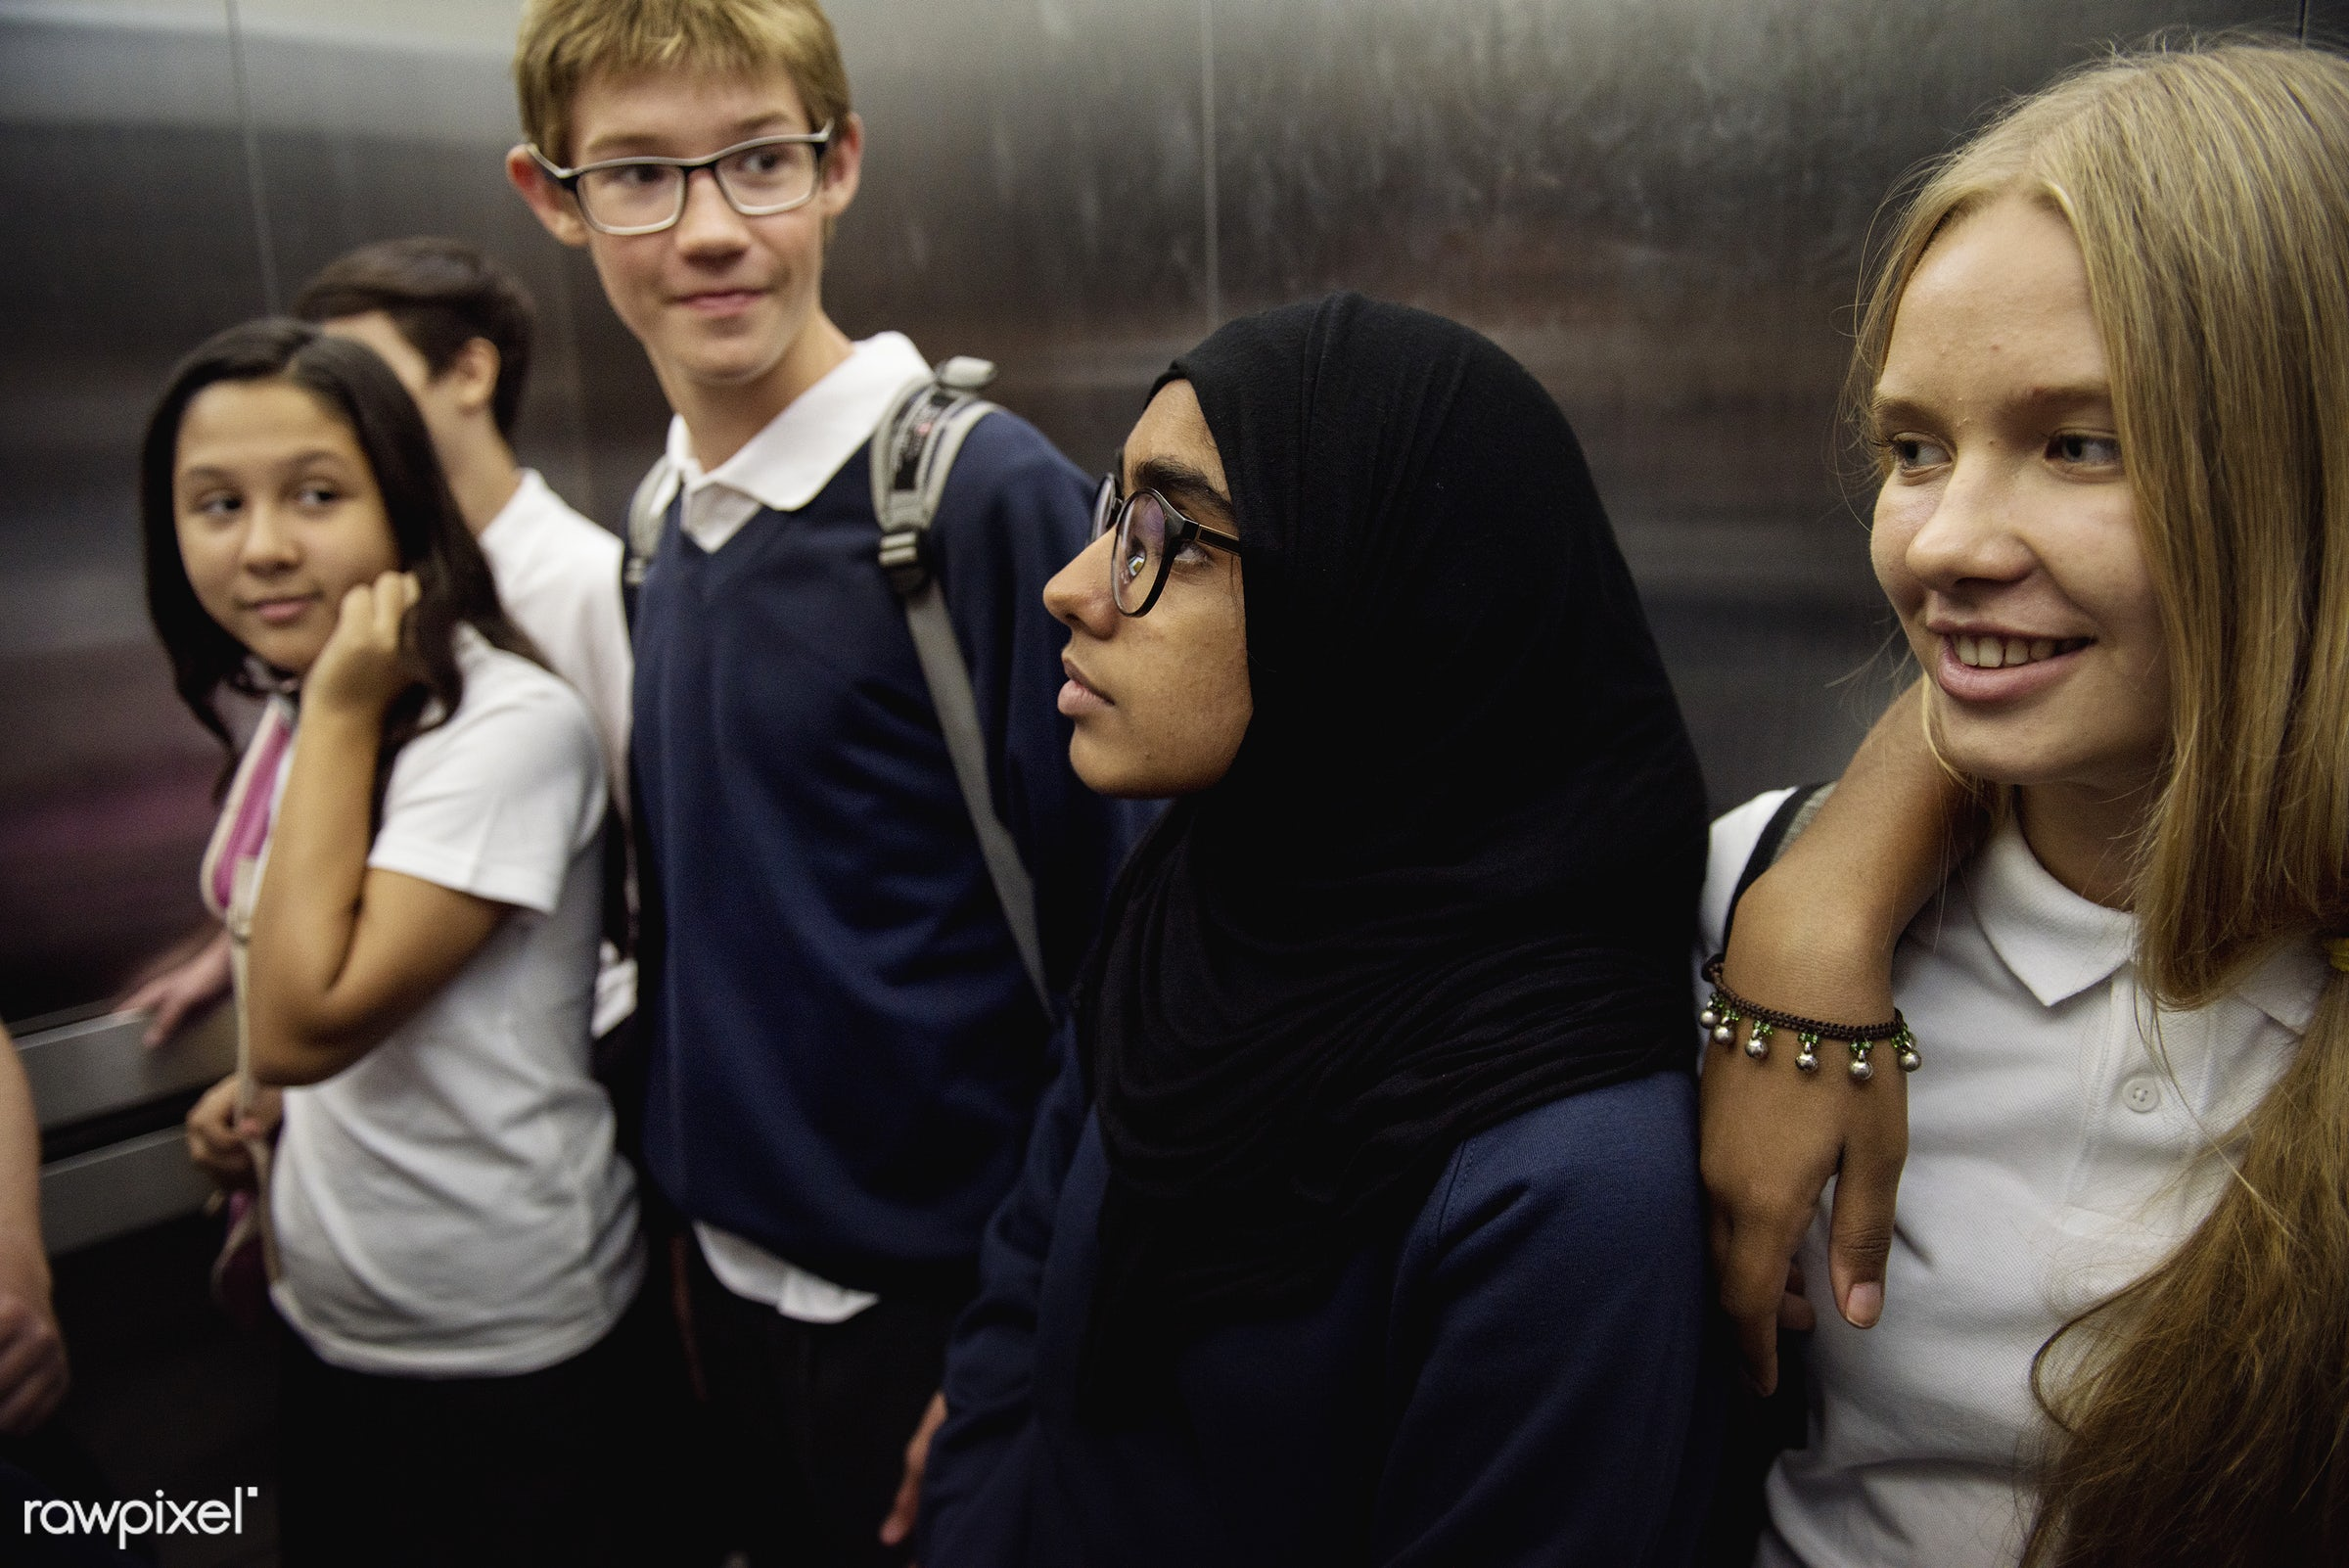 muslim, person, people, together, hispanic, caucasian, elevator, friends, young adult, boys, men, cheerful, girls, students...